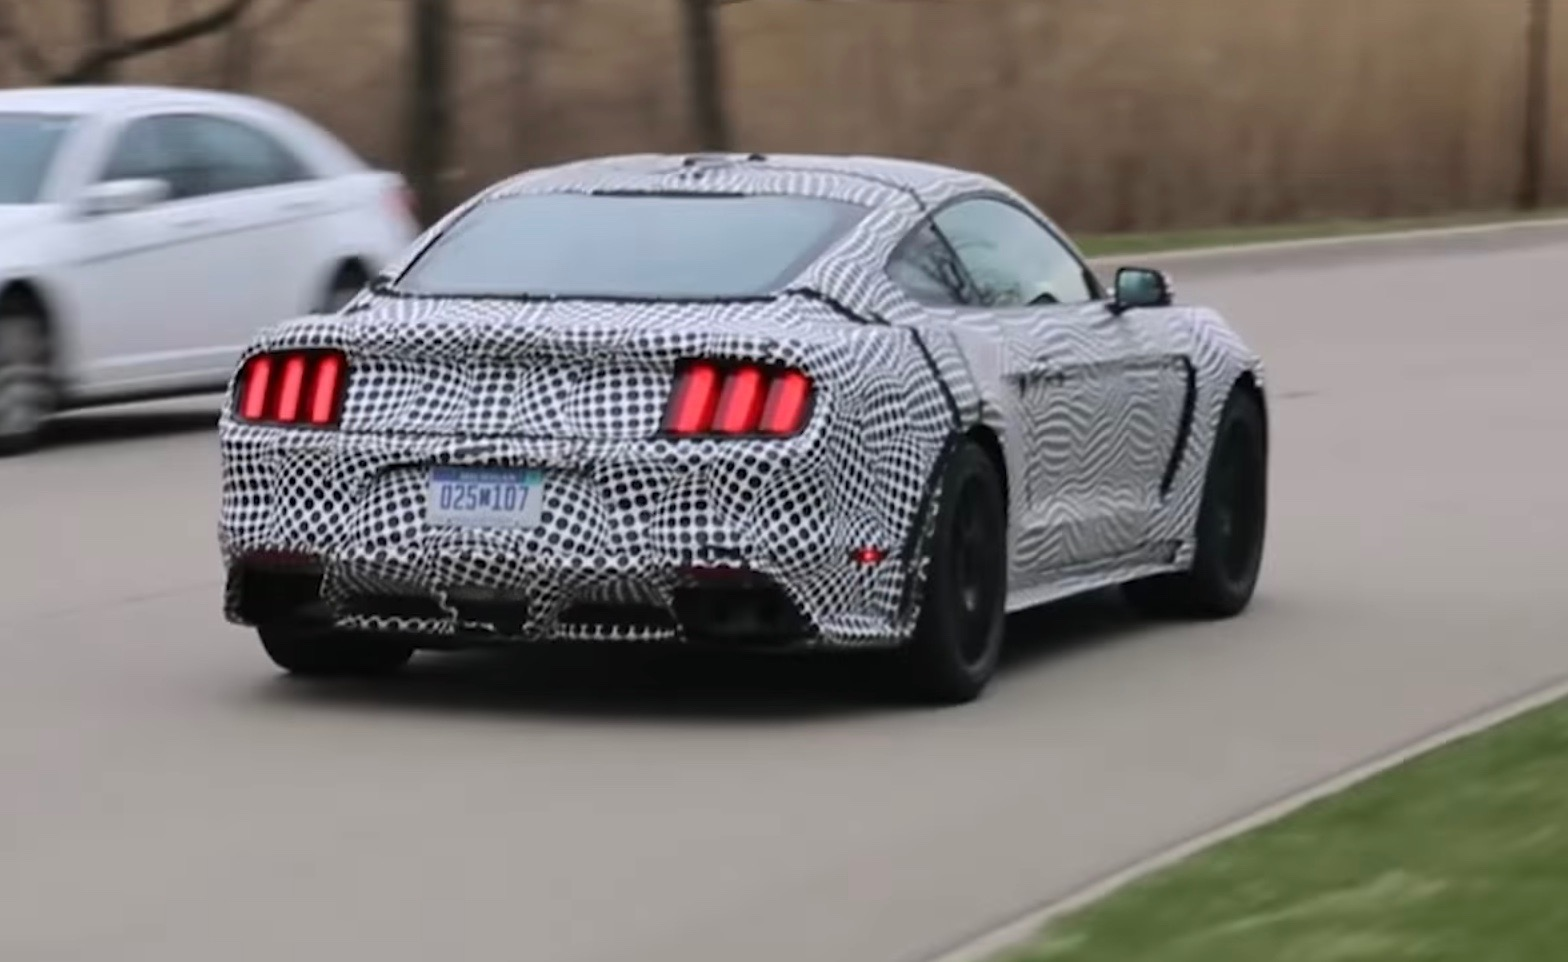 2019 ford mustang gt500 prototype rear